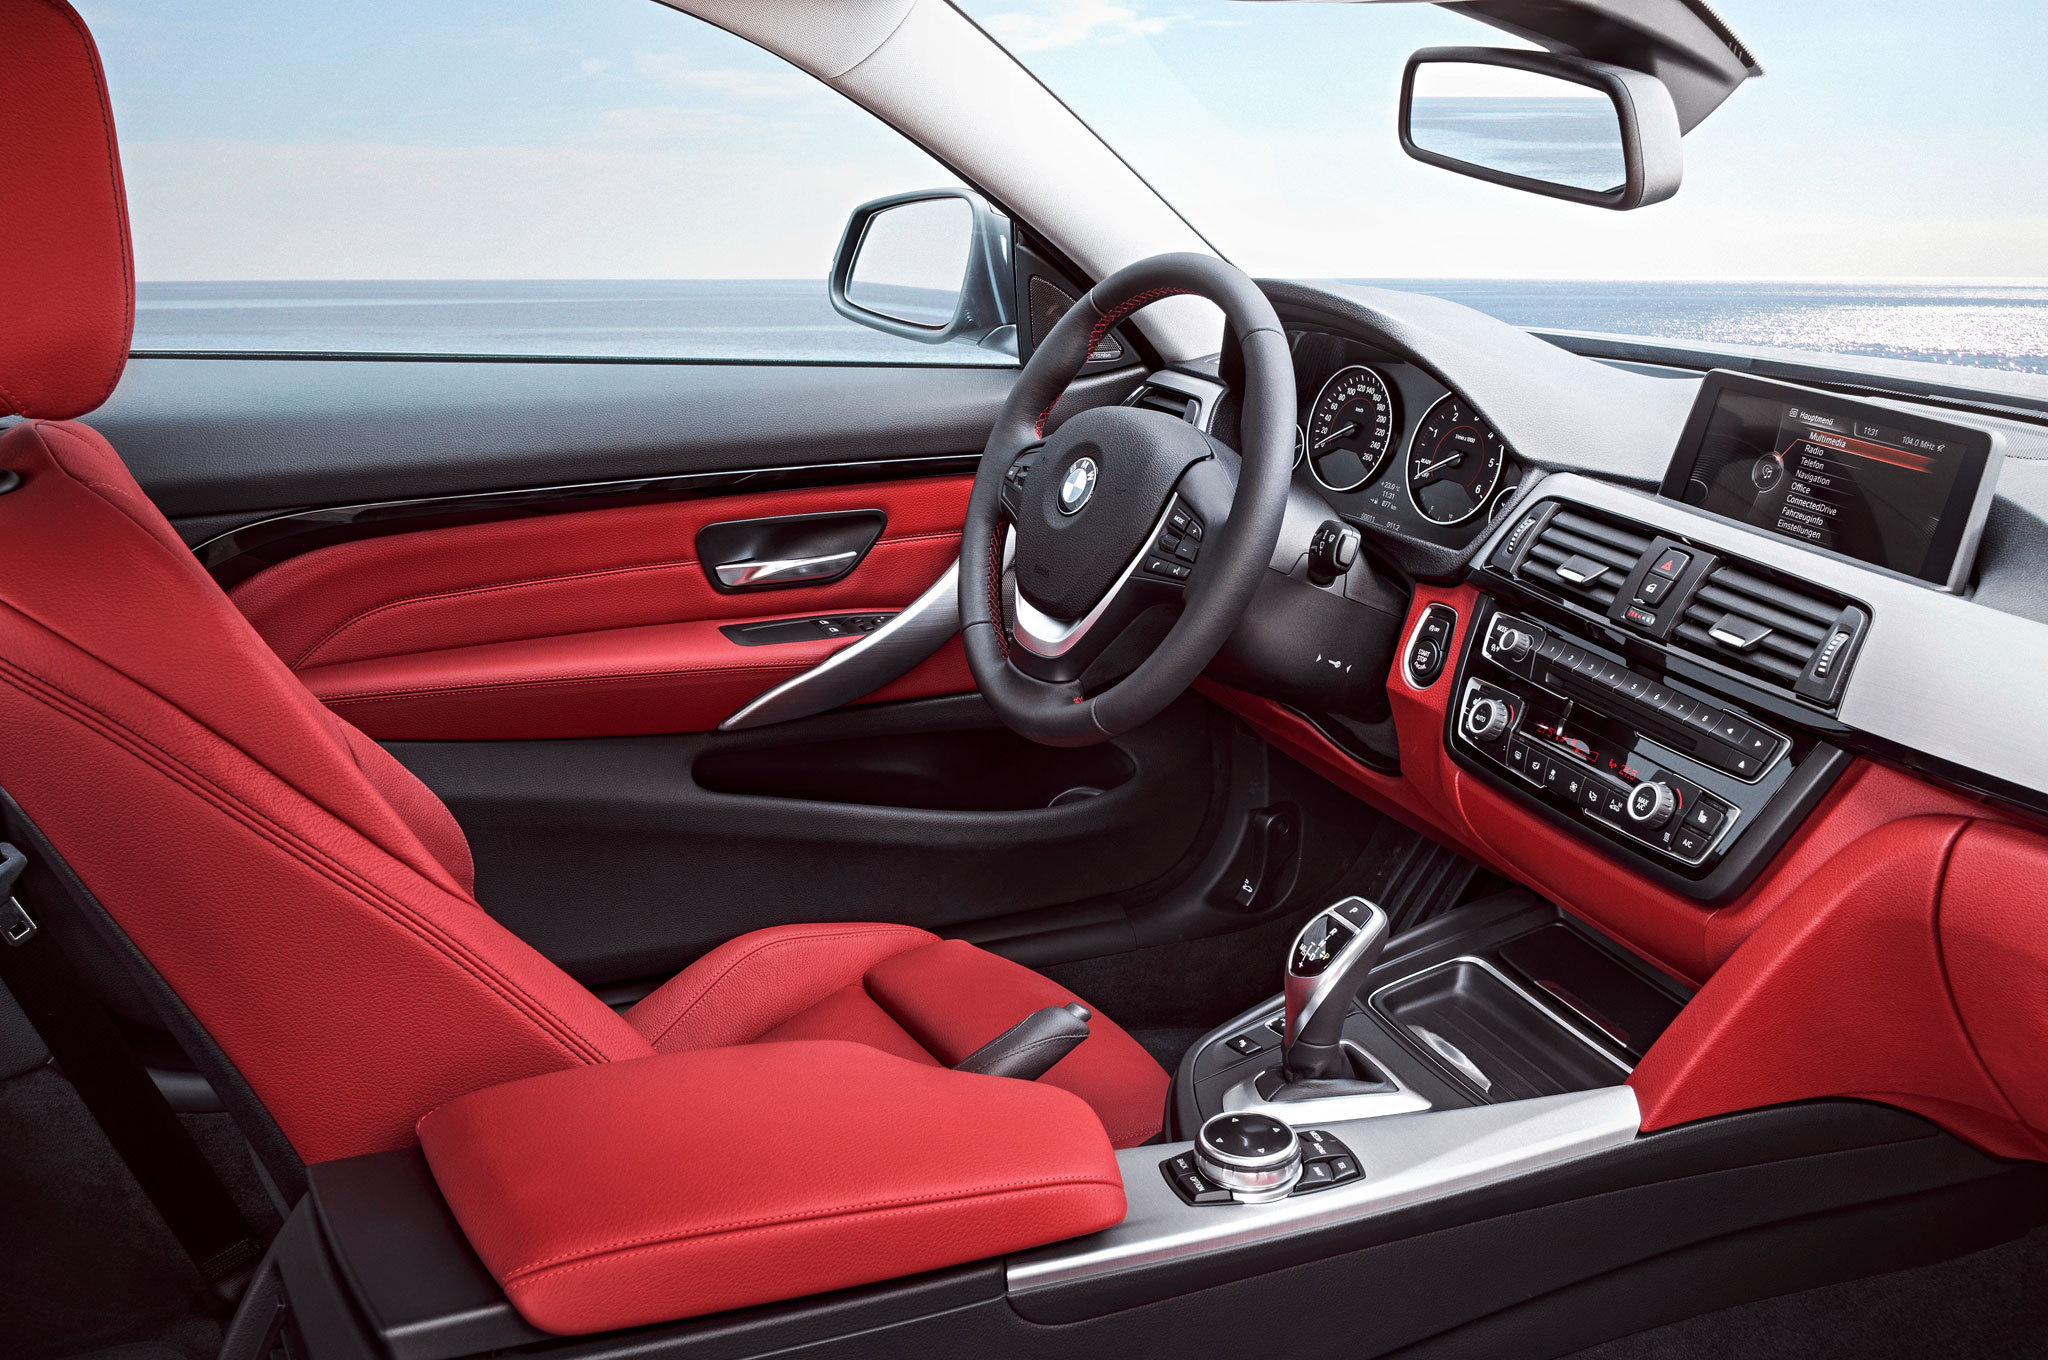 interior bmw date specs news front for sale red blue price release m carwow